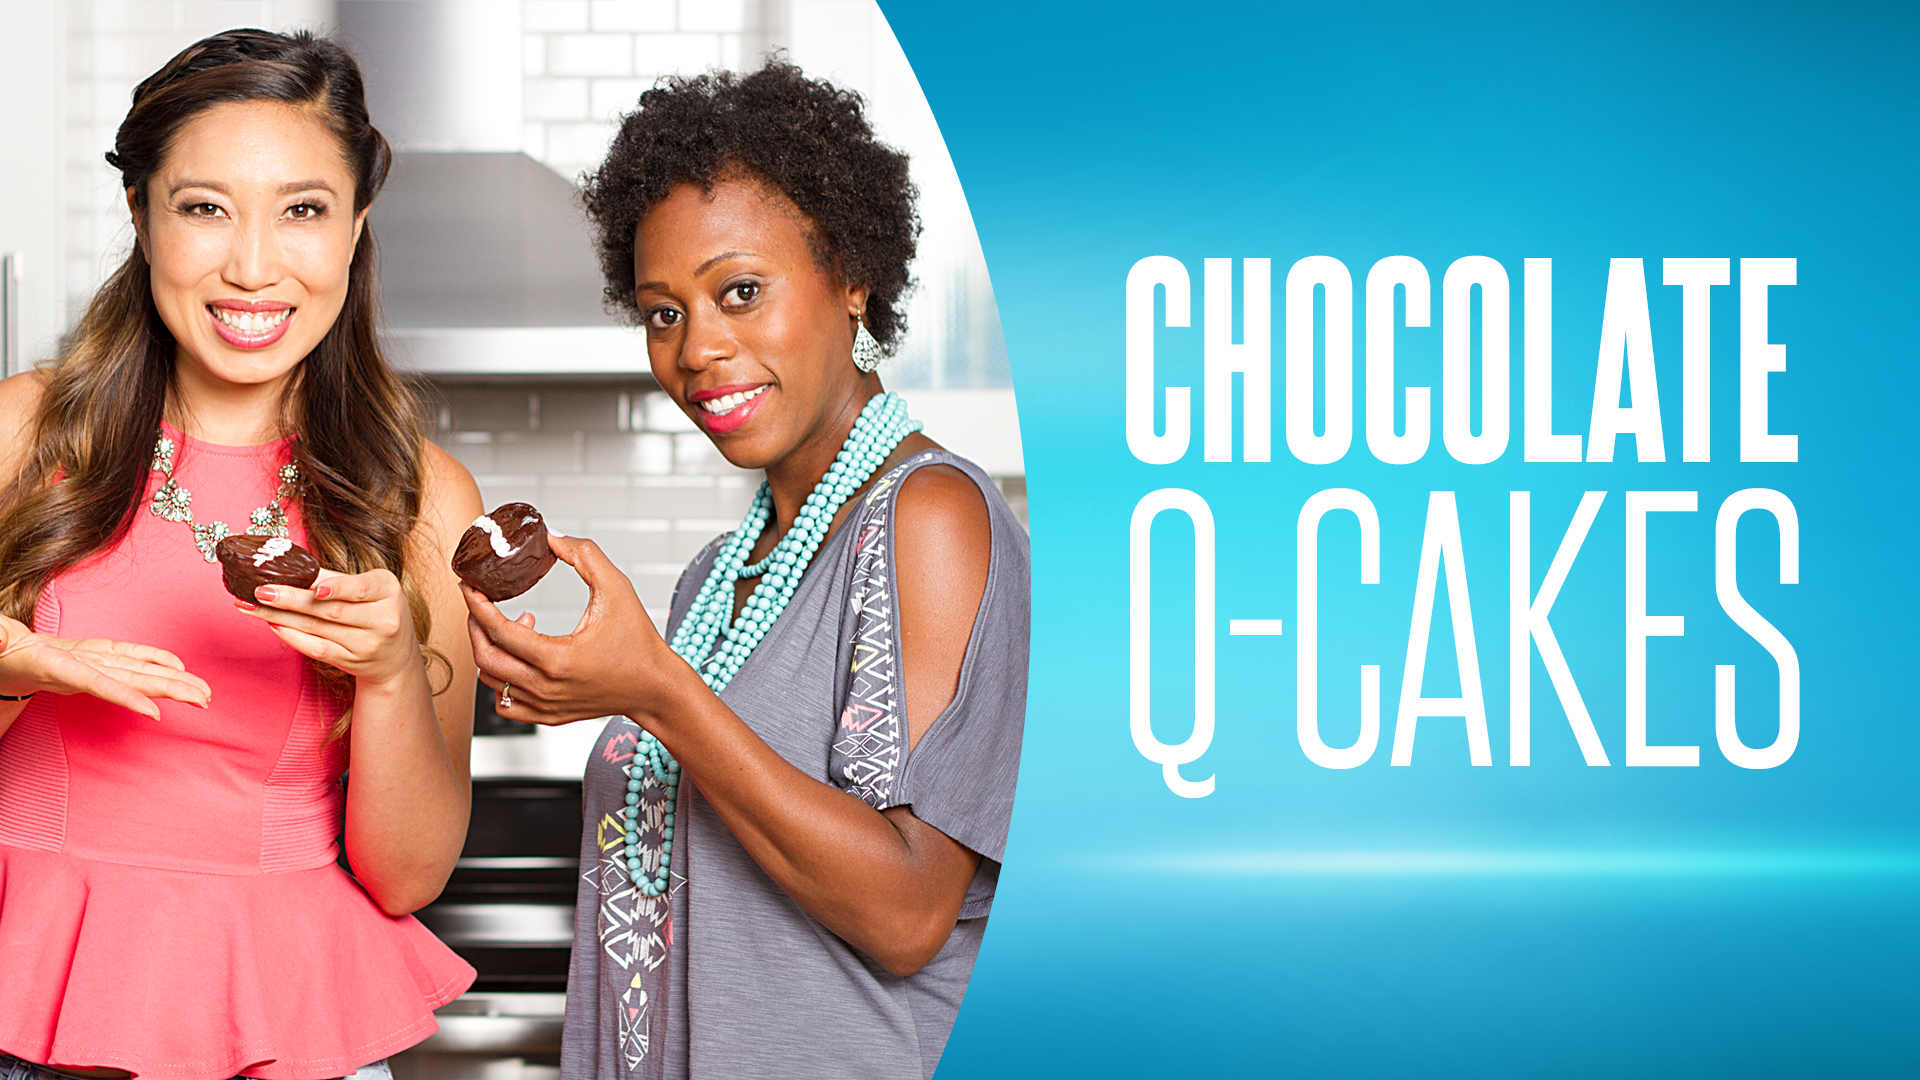 Cooking Clean With Quest: Q-Cakes with Blogilates and BrittsBreakdown